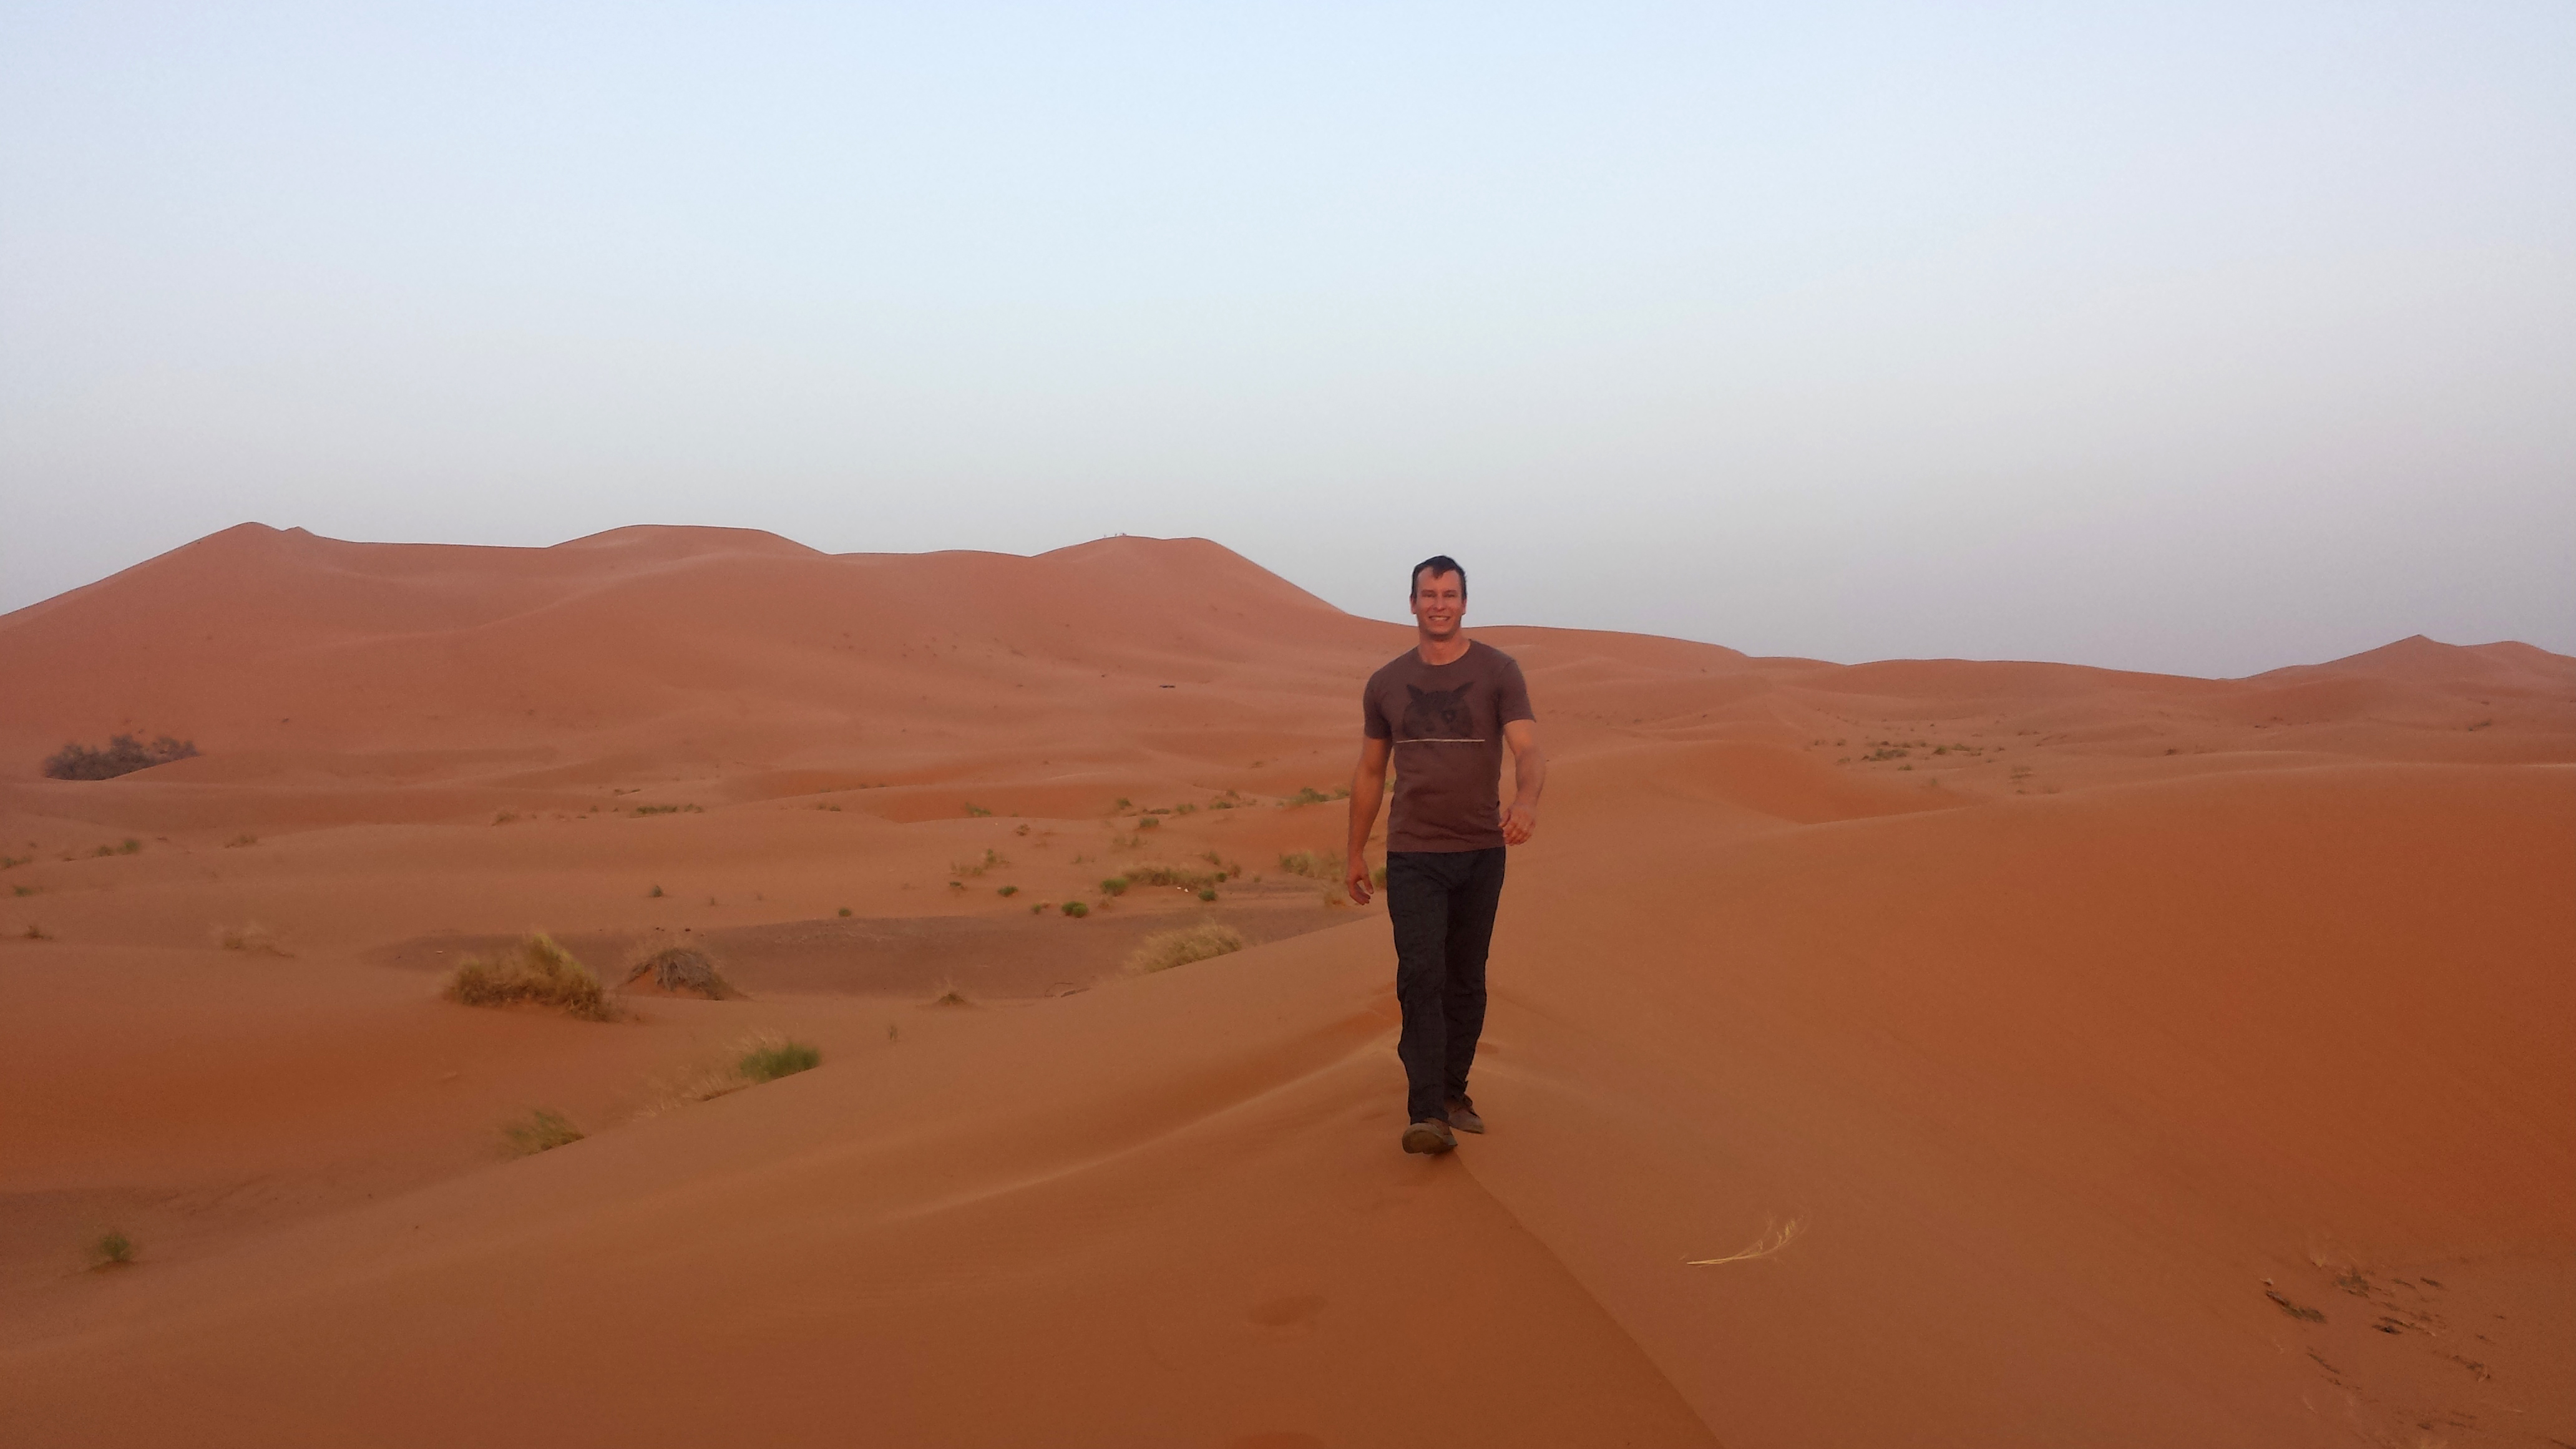 Chris Reynolds, an agribusiness major in the UGA College of Agricultural and Environmental Sciences, presented on his horticultural internship in Morocco during summer 2015. Reynolds is an International Certificate Student and presented at the inaugural international agriculture certificate students night.